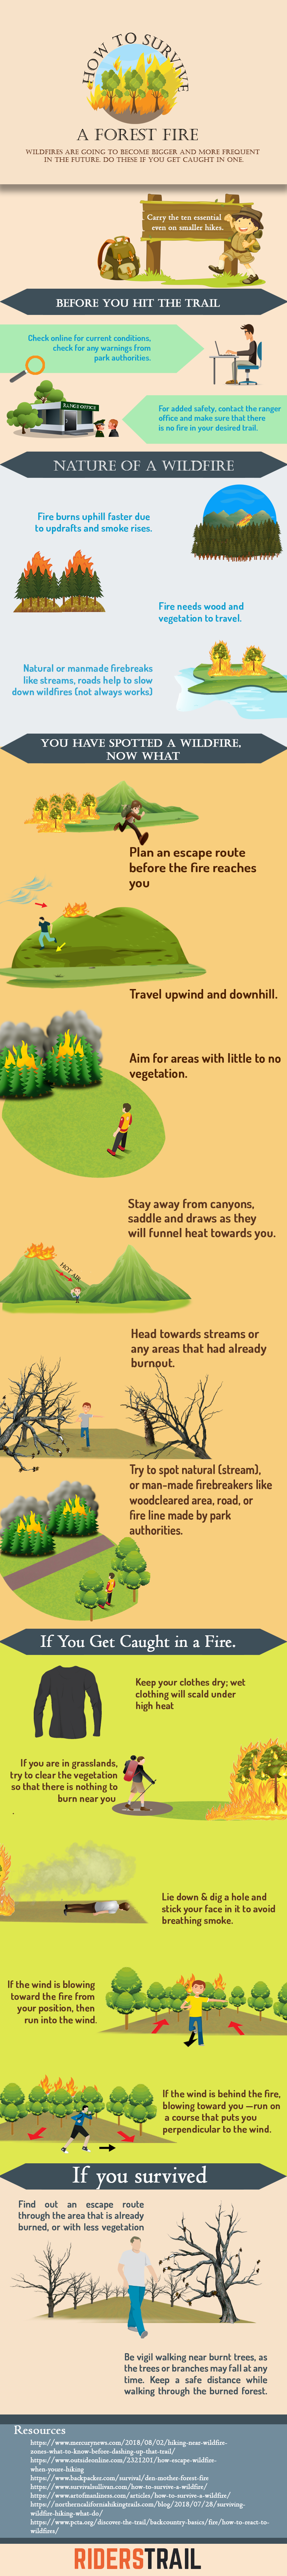 Fire safety while hiking: some great tips